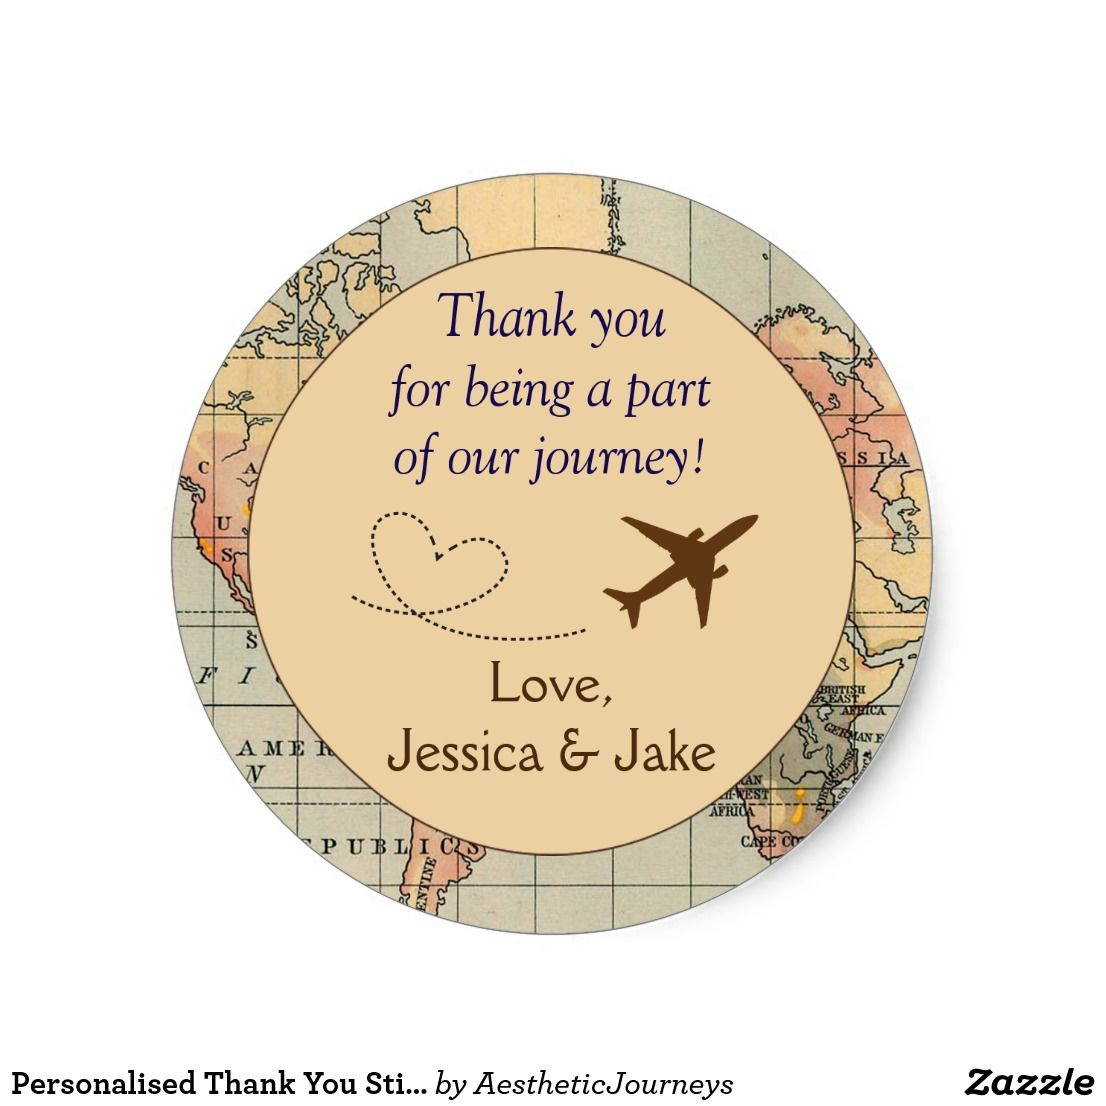 personalised thank you stickers- wedding favors classic round